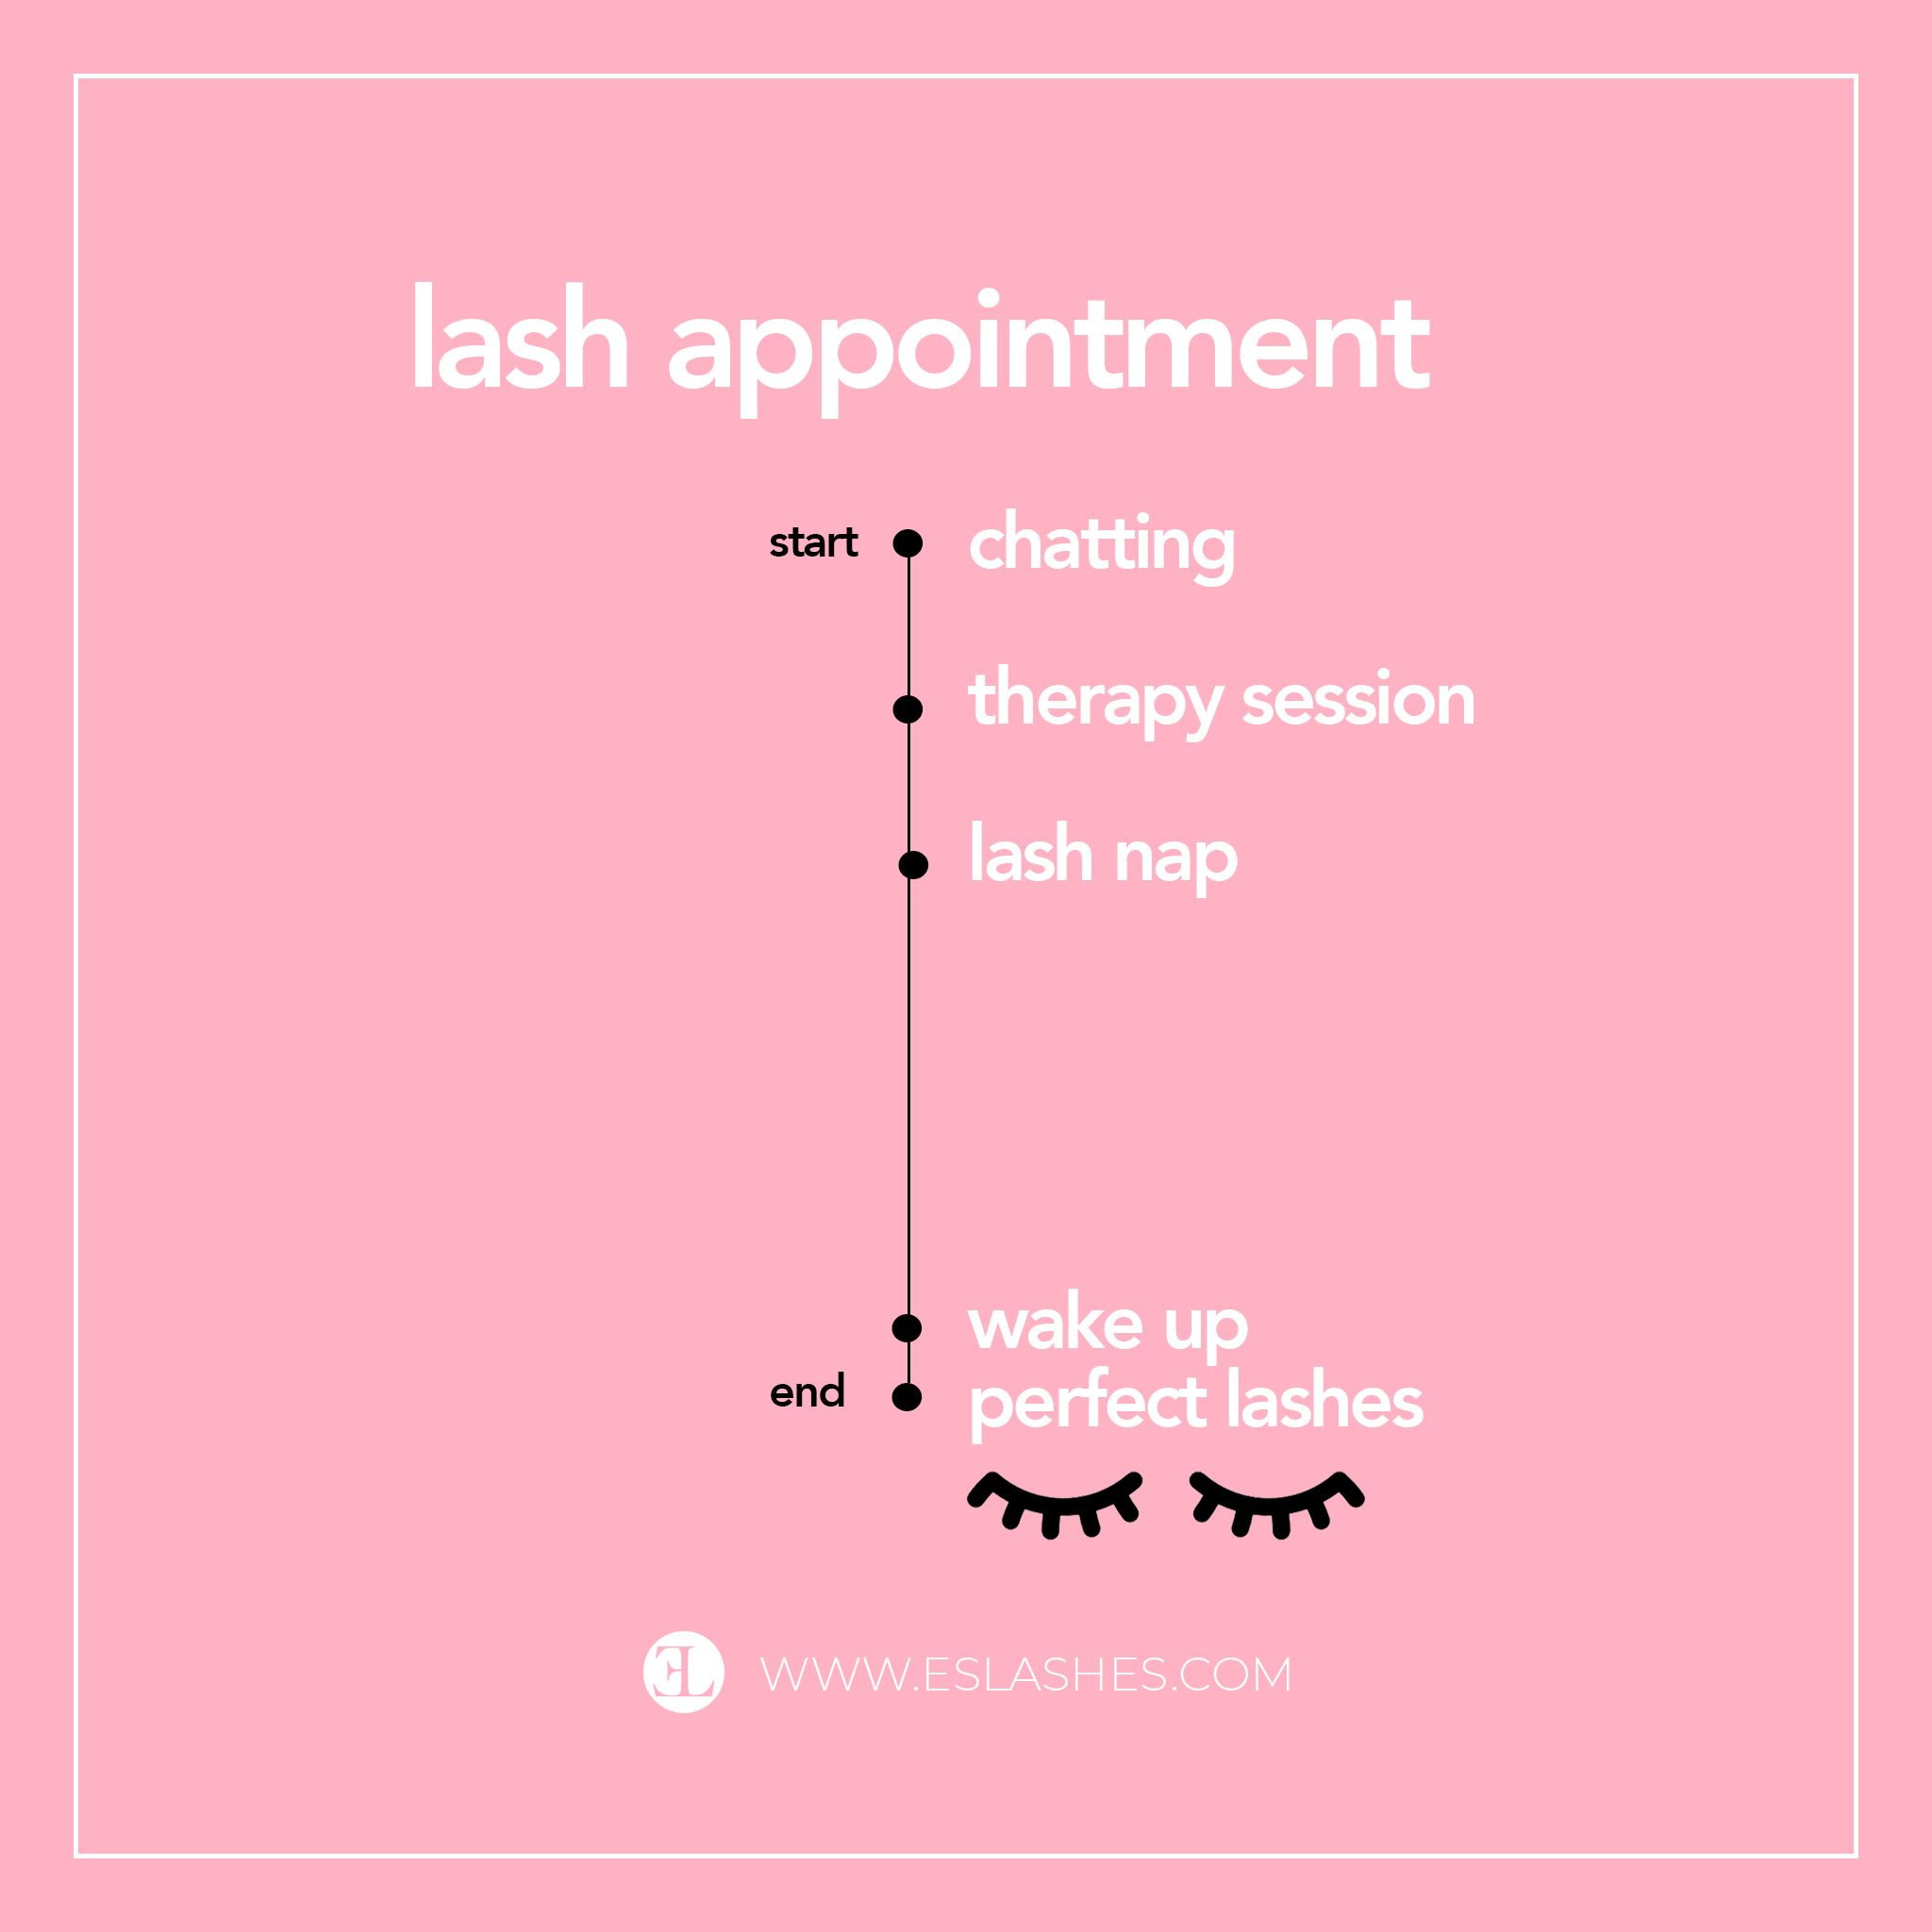 Lash appointment funny quote 🤣